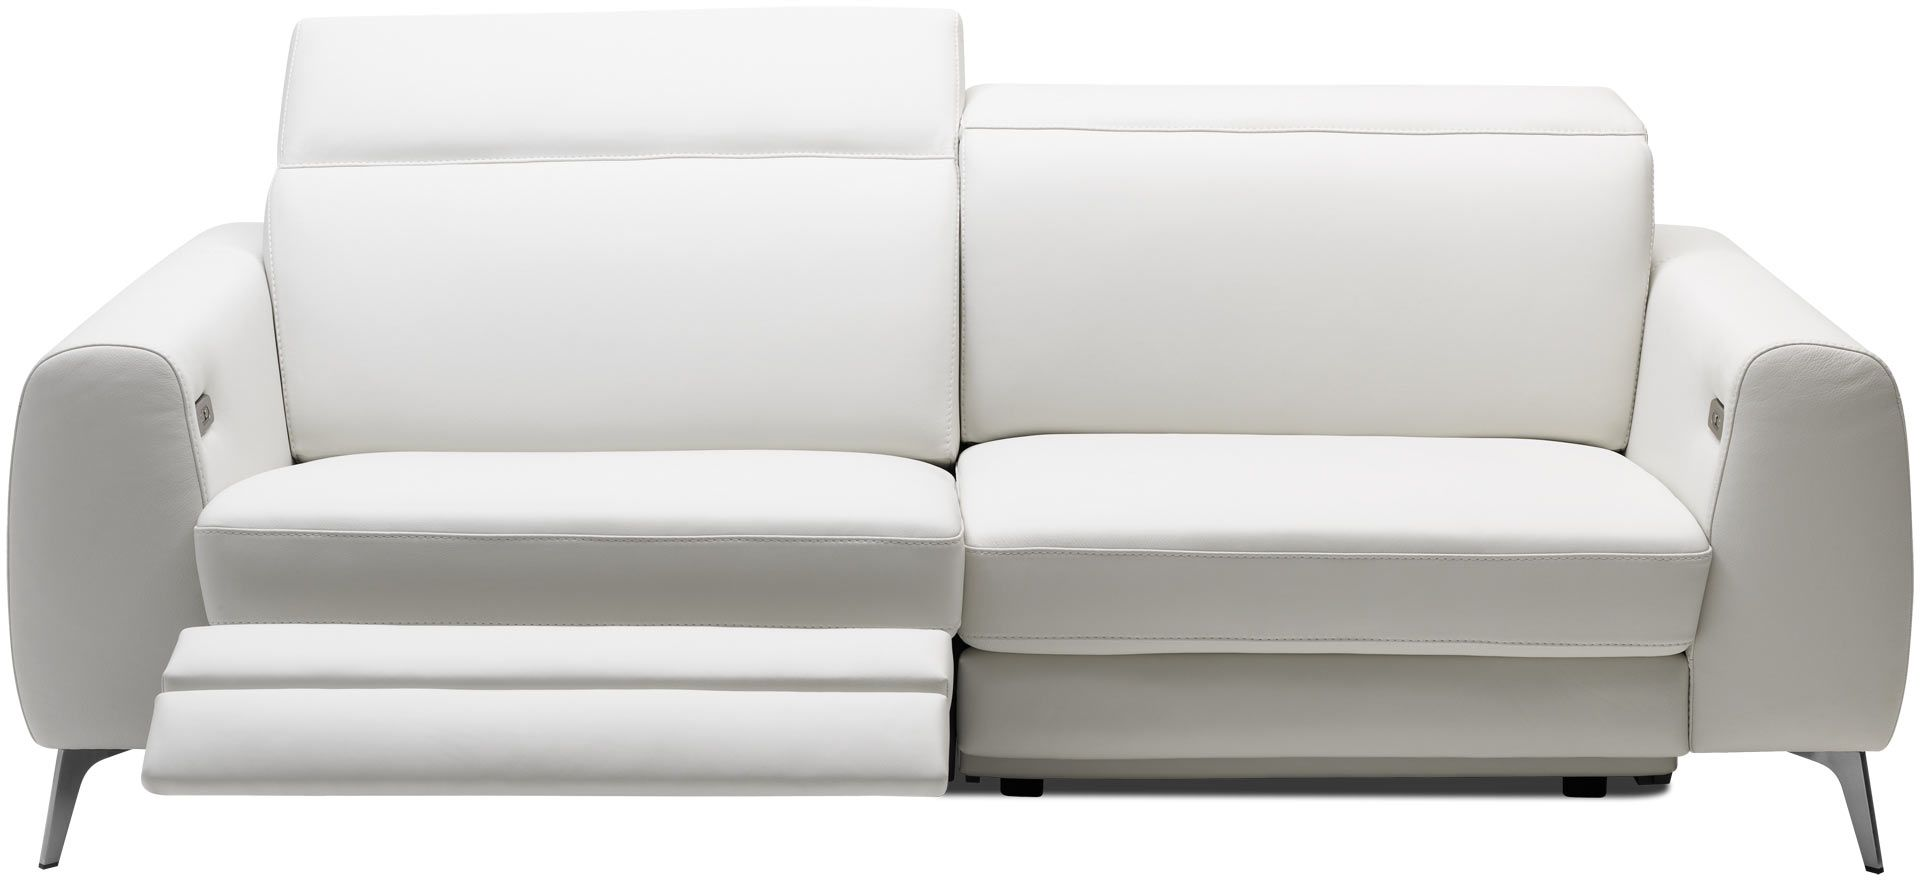 Astonishing Madison Sofa With Electric Seat Head And Foot Rest Motion Dailytribune Chair Design For Home Dailytribuneorg